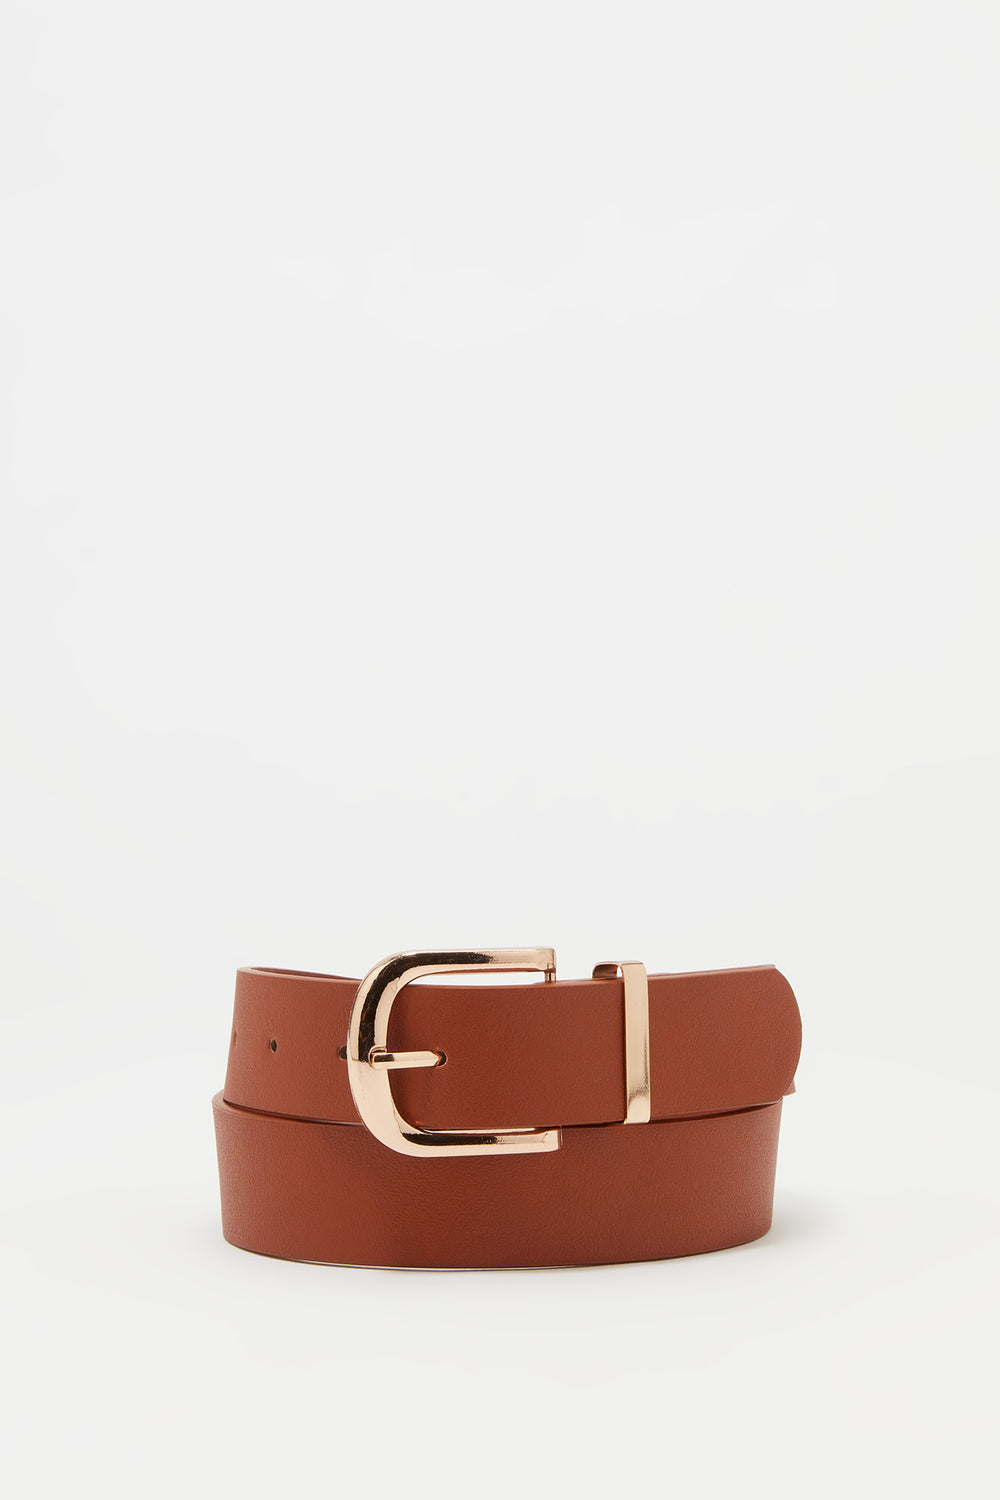 Basic Buckle Belt Camel